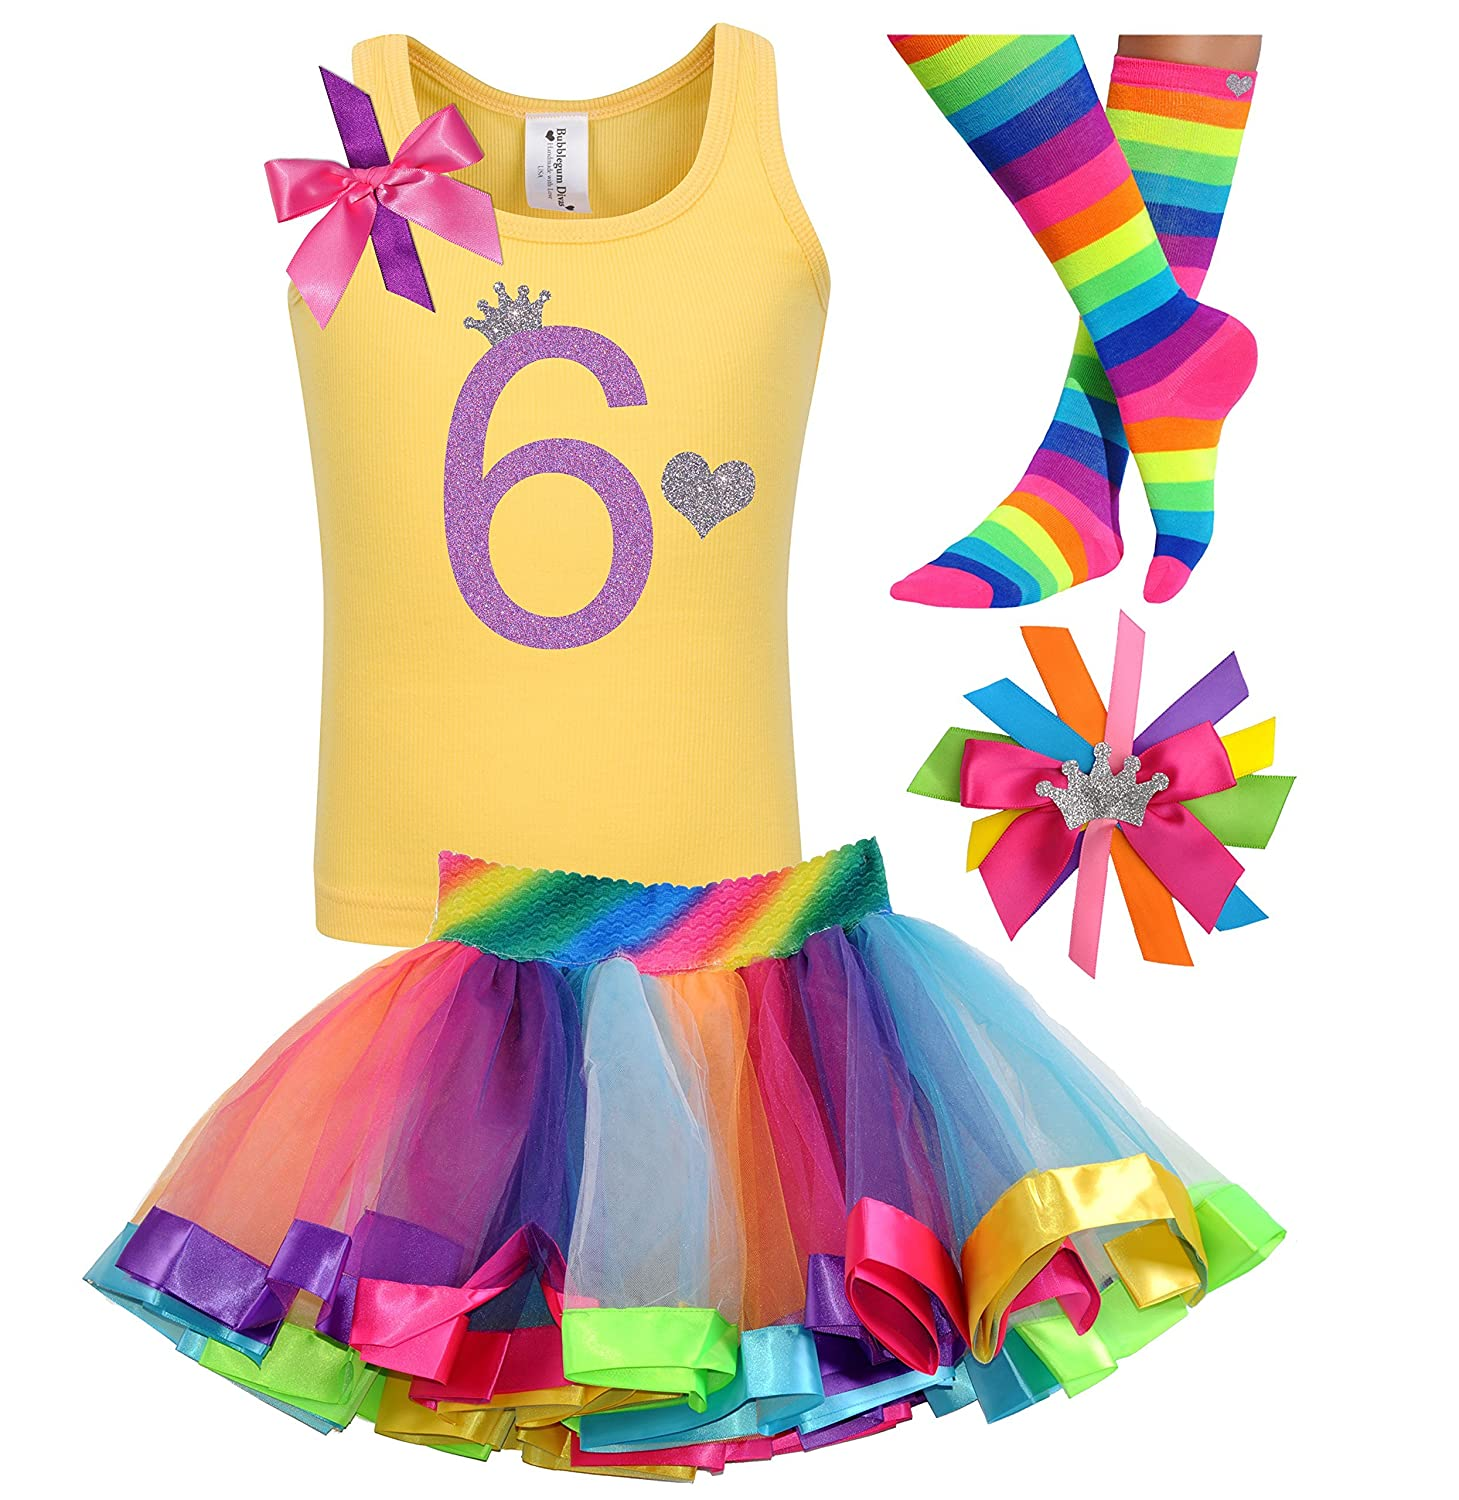 6th Birthday Shirt Rainbow Tutu Girls Princess Party Outfit 4PC Gift Set Personalized Name 6 Years Old